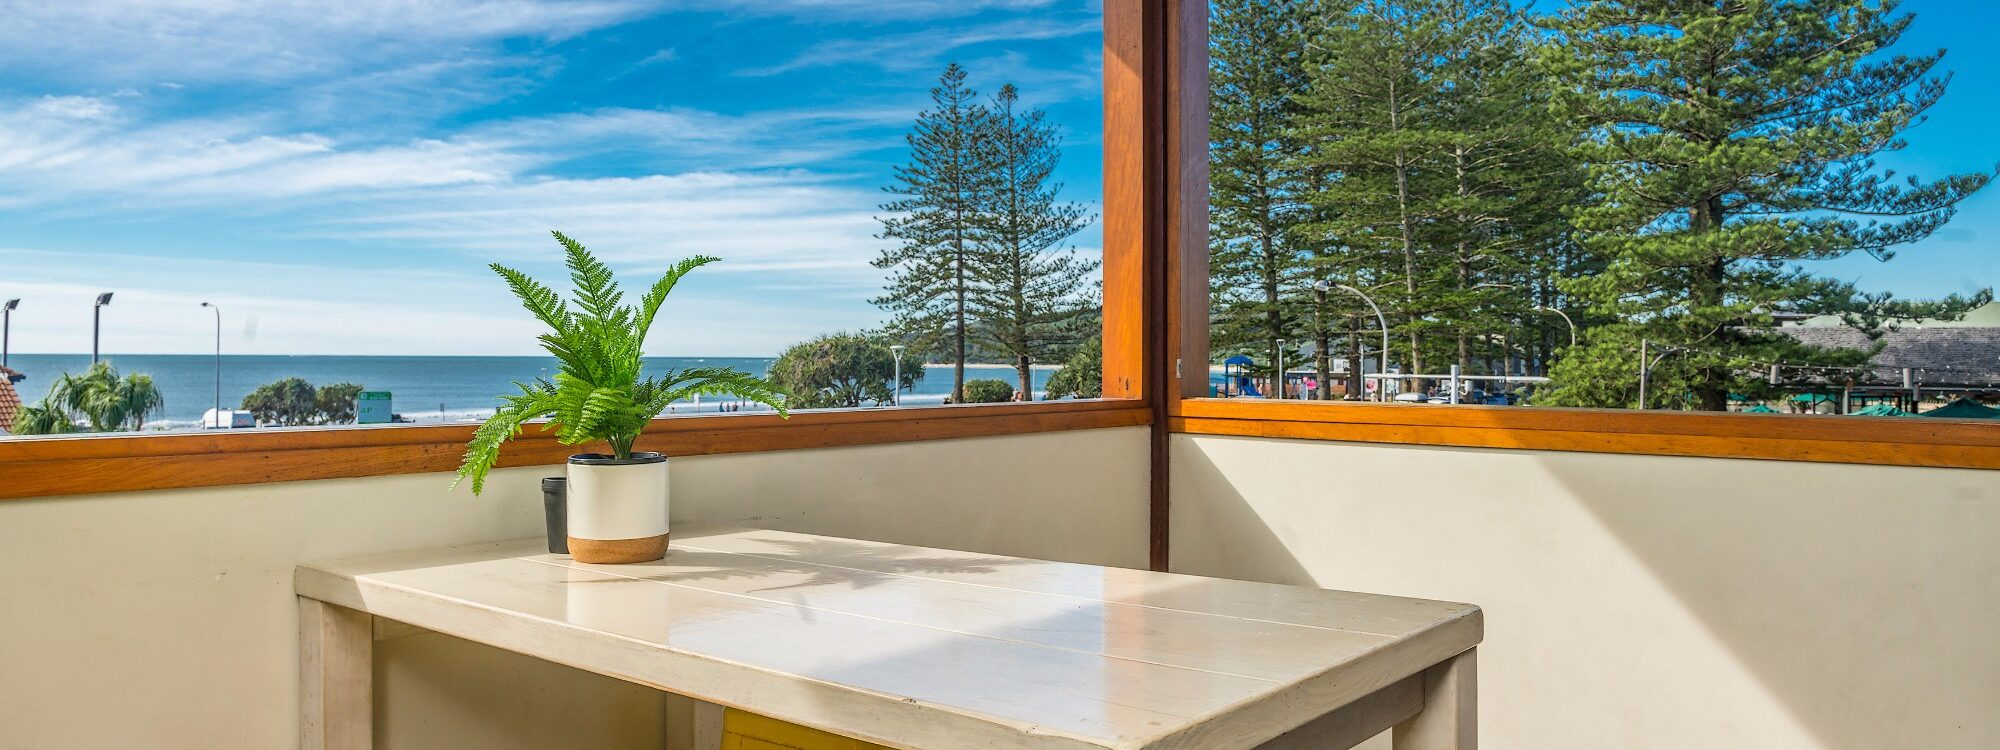 Quiksilver Apartments - The Pass - take in the scenery